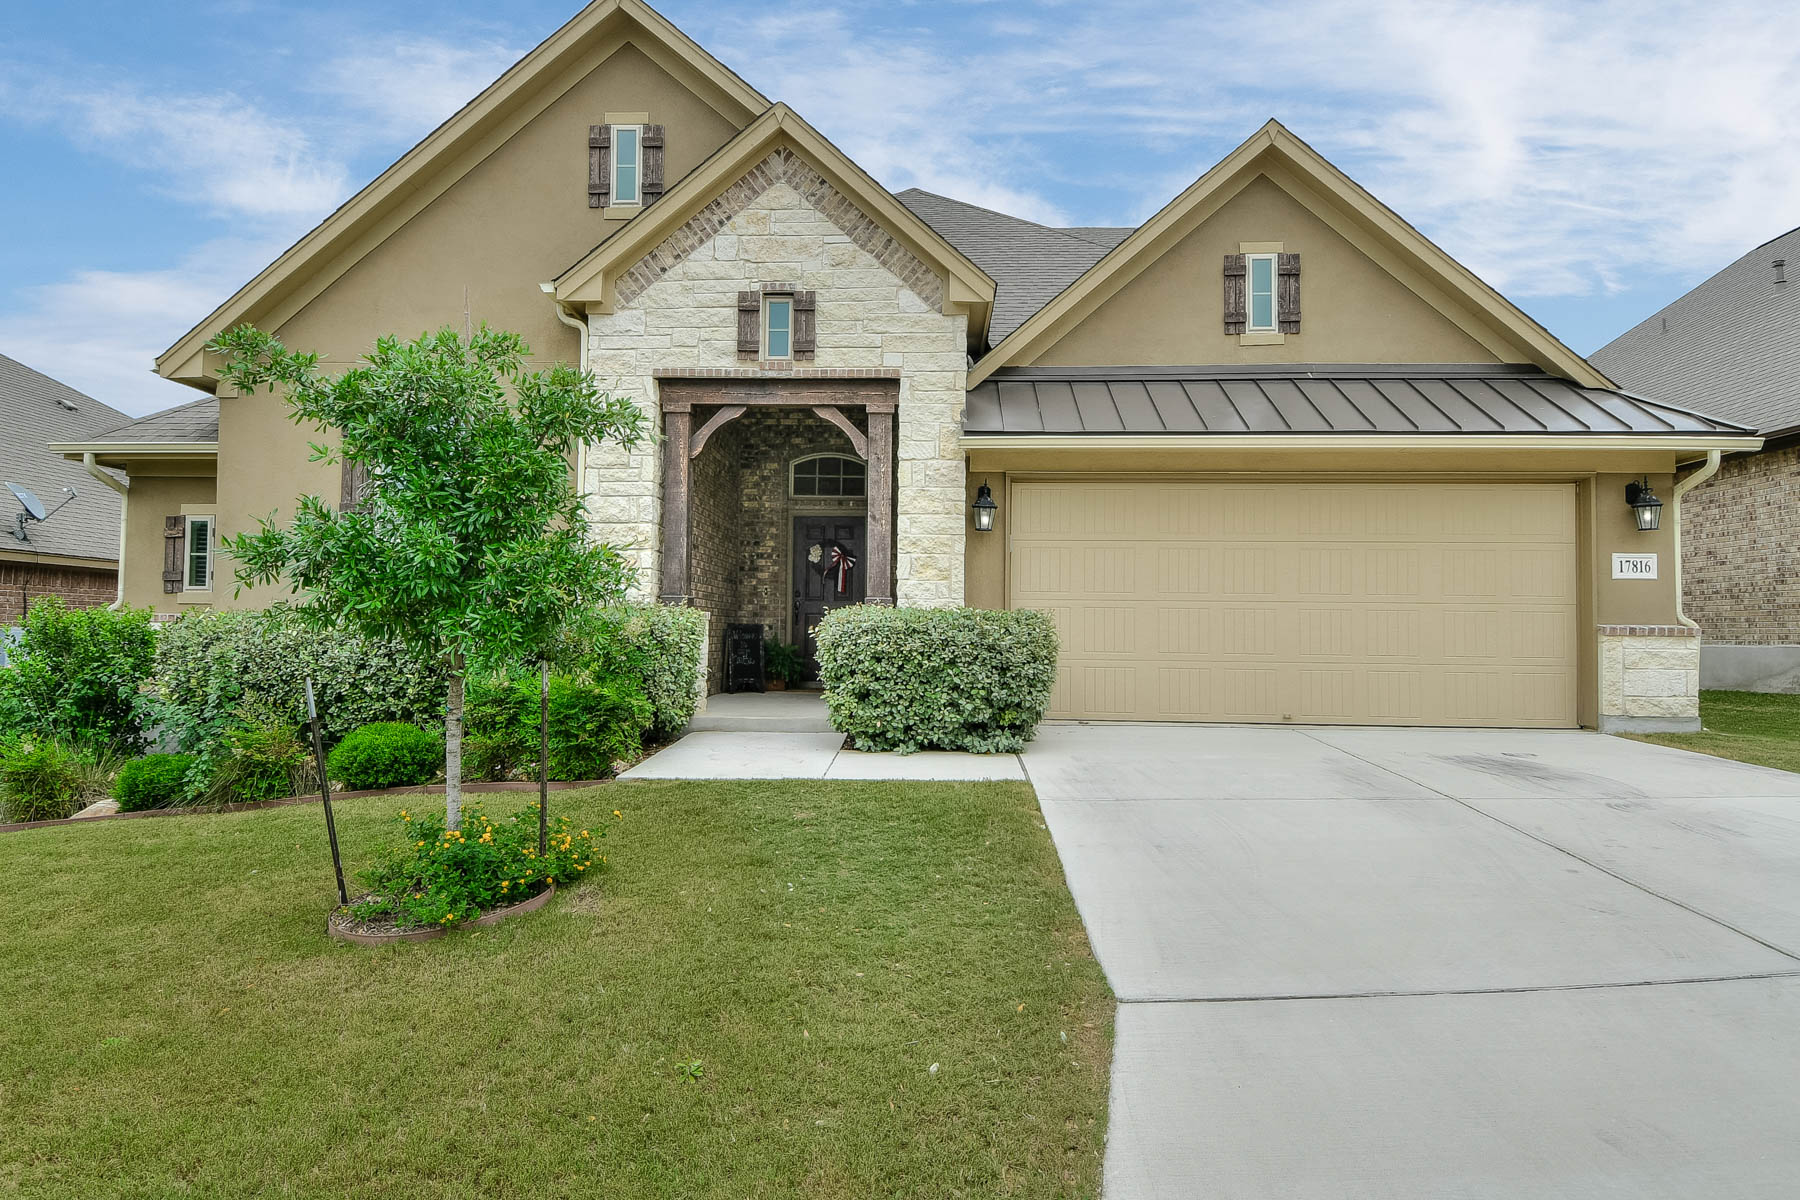 Single Family Home for Sale at Bright and Spacious Home in The Sanctuary 17816 Oxford Mountain Helotes, Texas 78023 United States